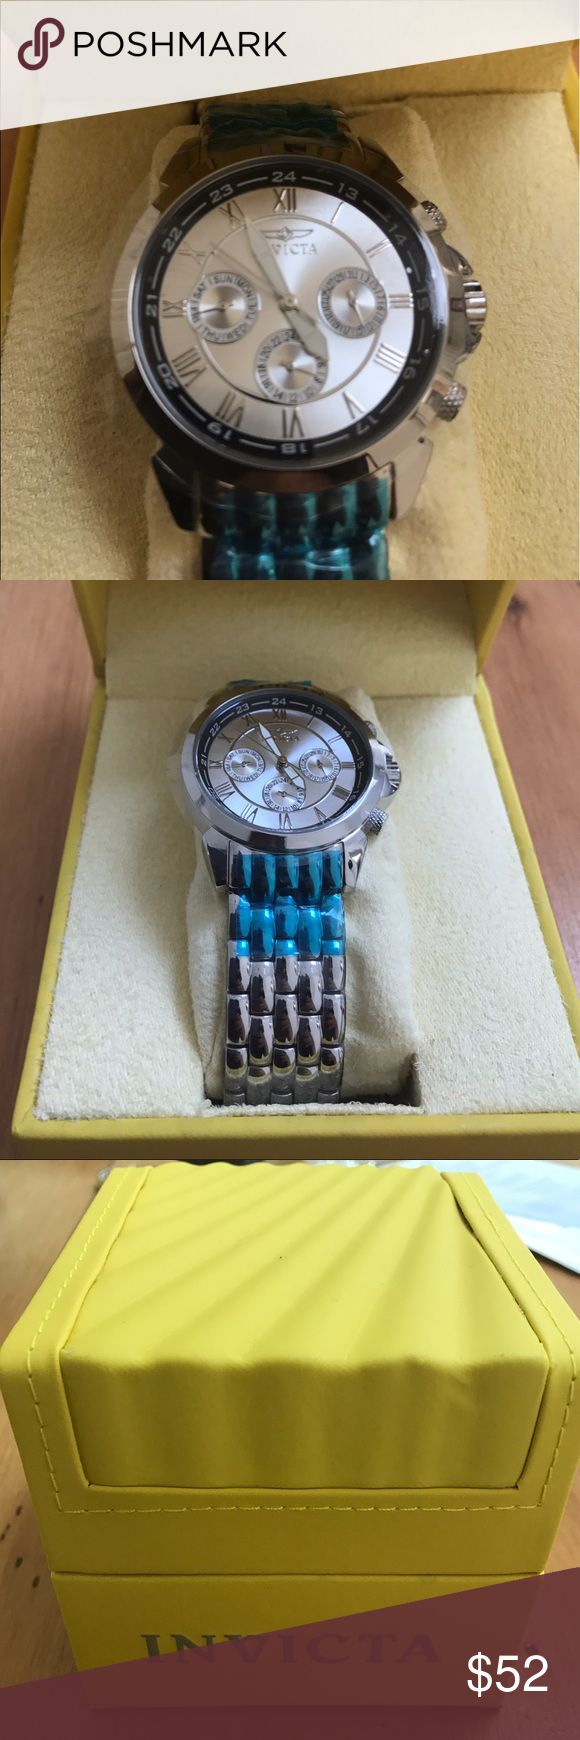 Invicta Men's Silver Watch NWT This Invicta men's watch is NWT and unworn! Invicta Accessories Watches